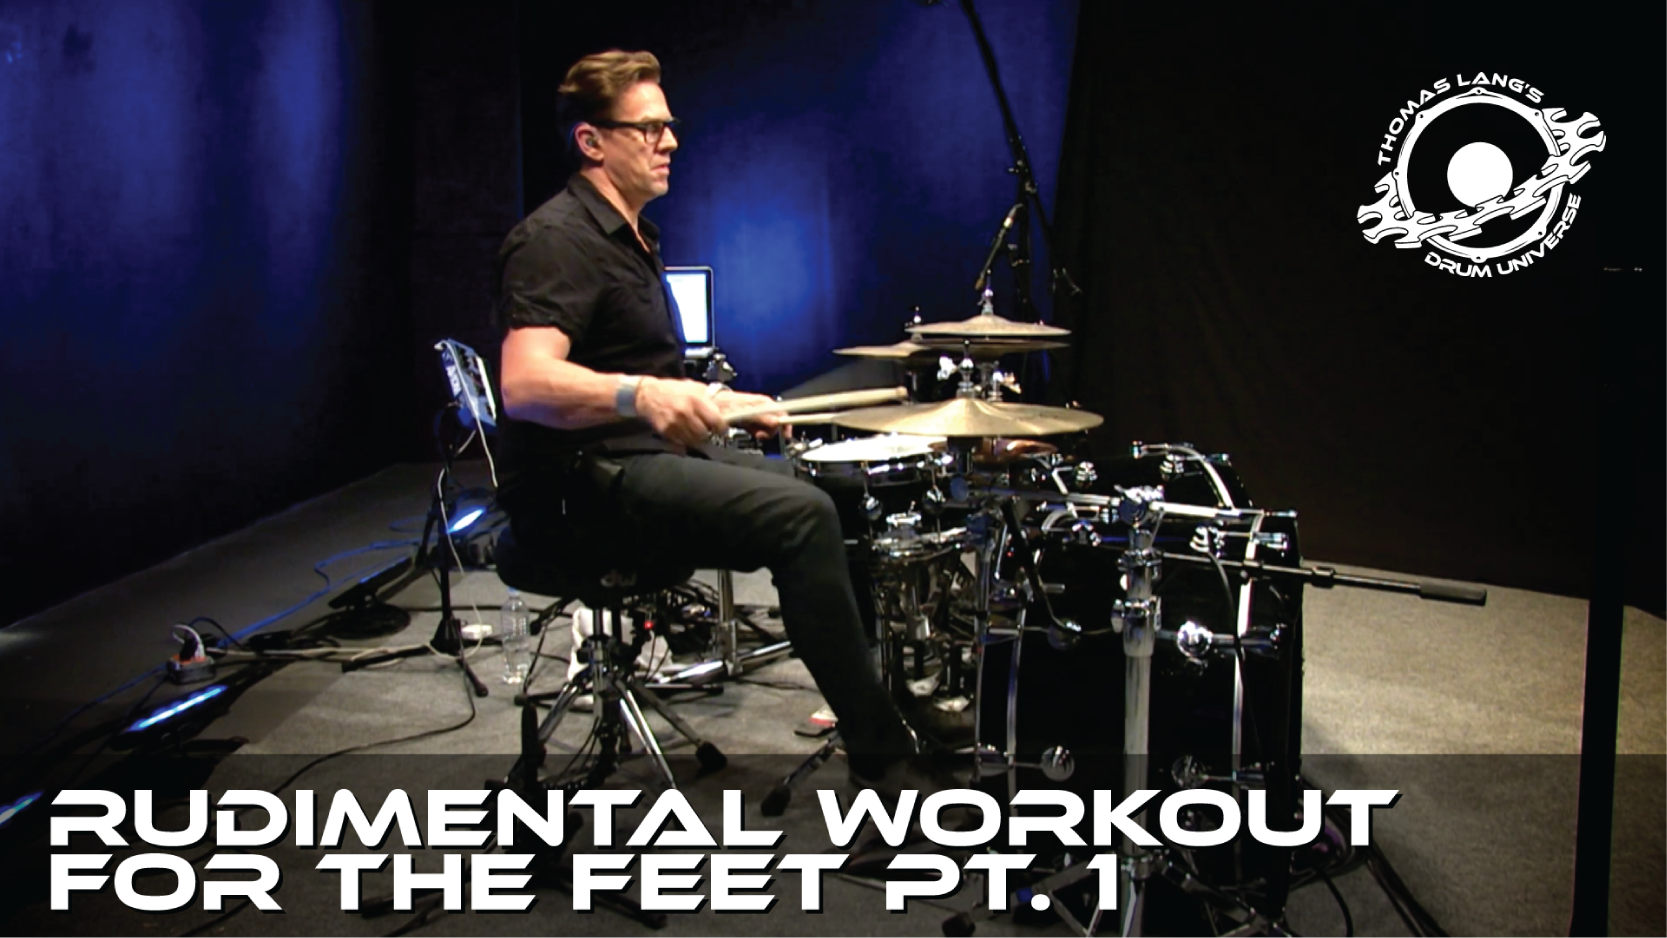 Rudimental Workout for the Feet Pt. 1